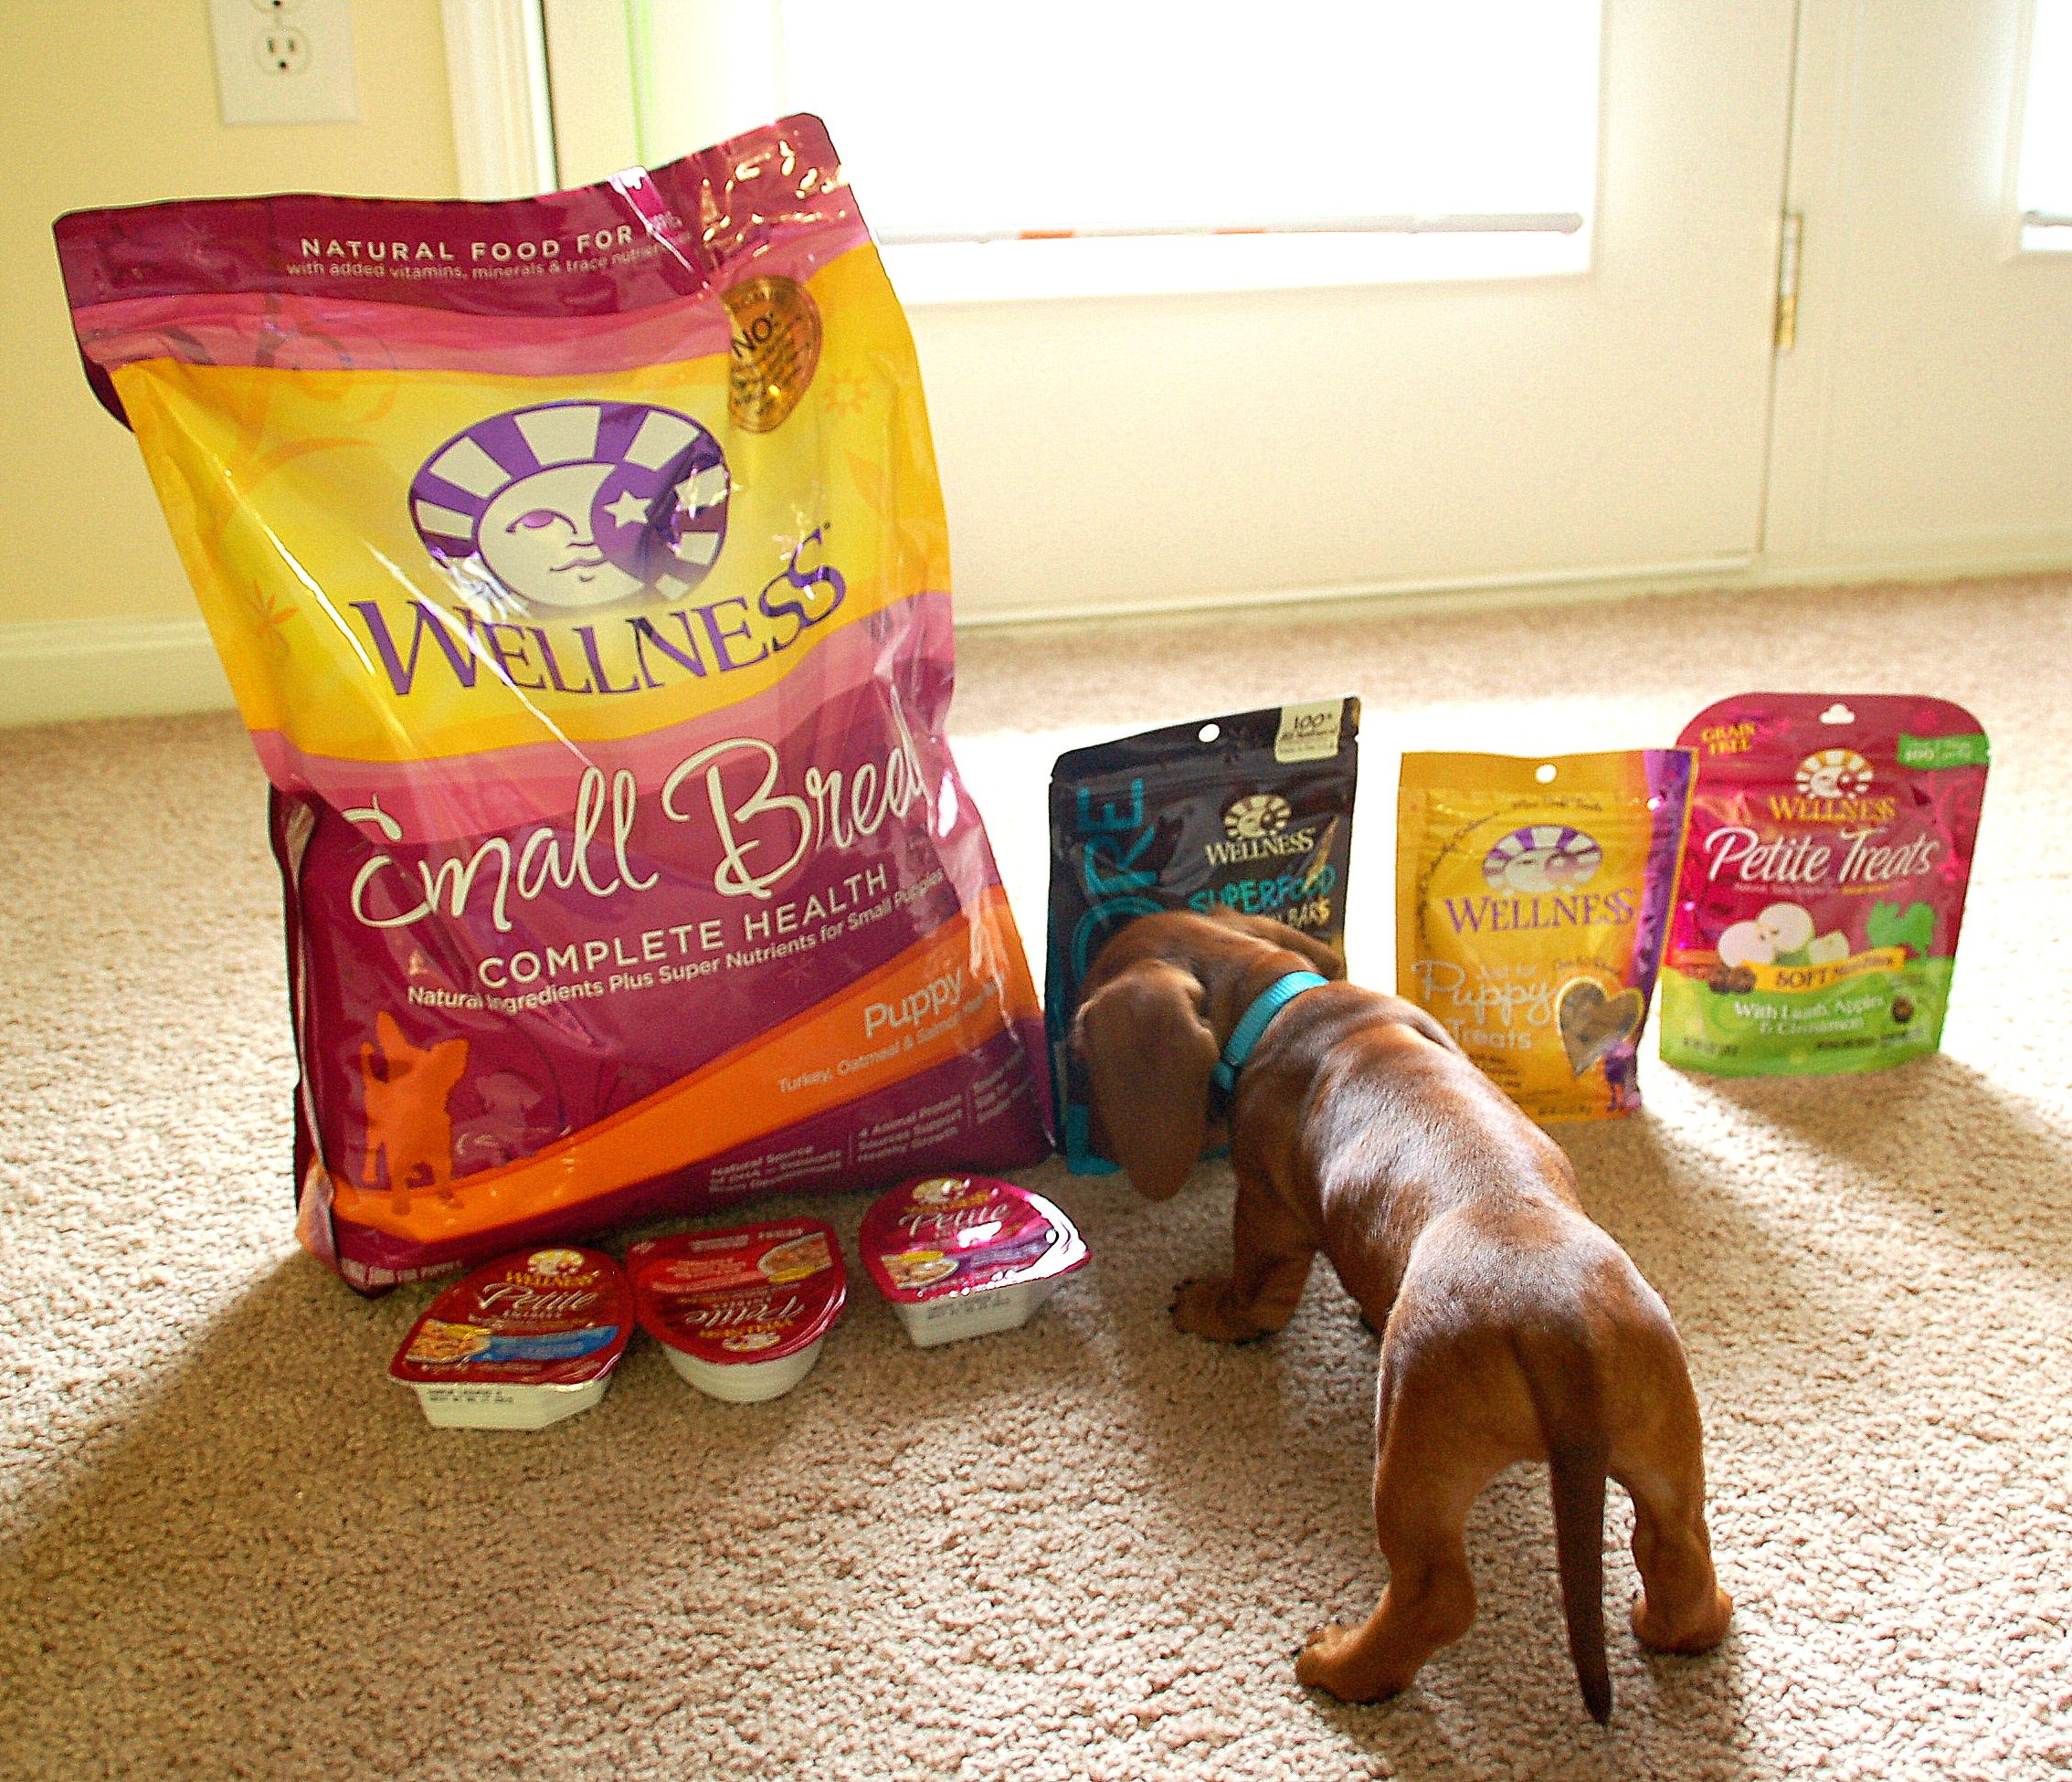 Pete S Favorite Food Wellness Product Reviews Puppies Puppy